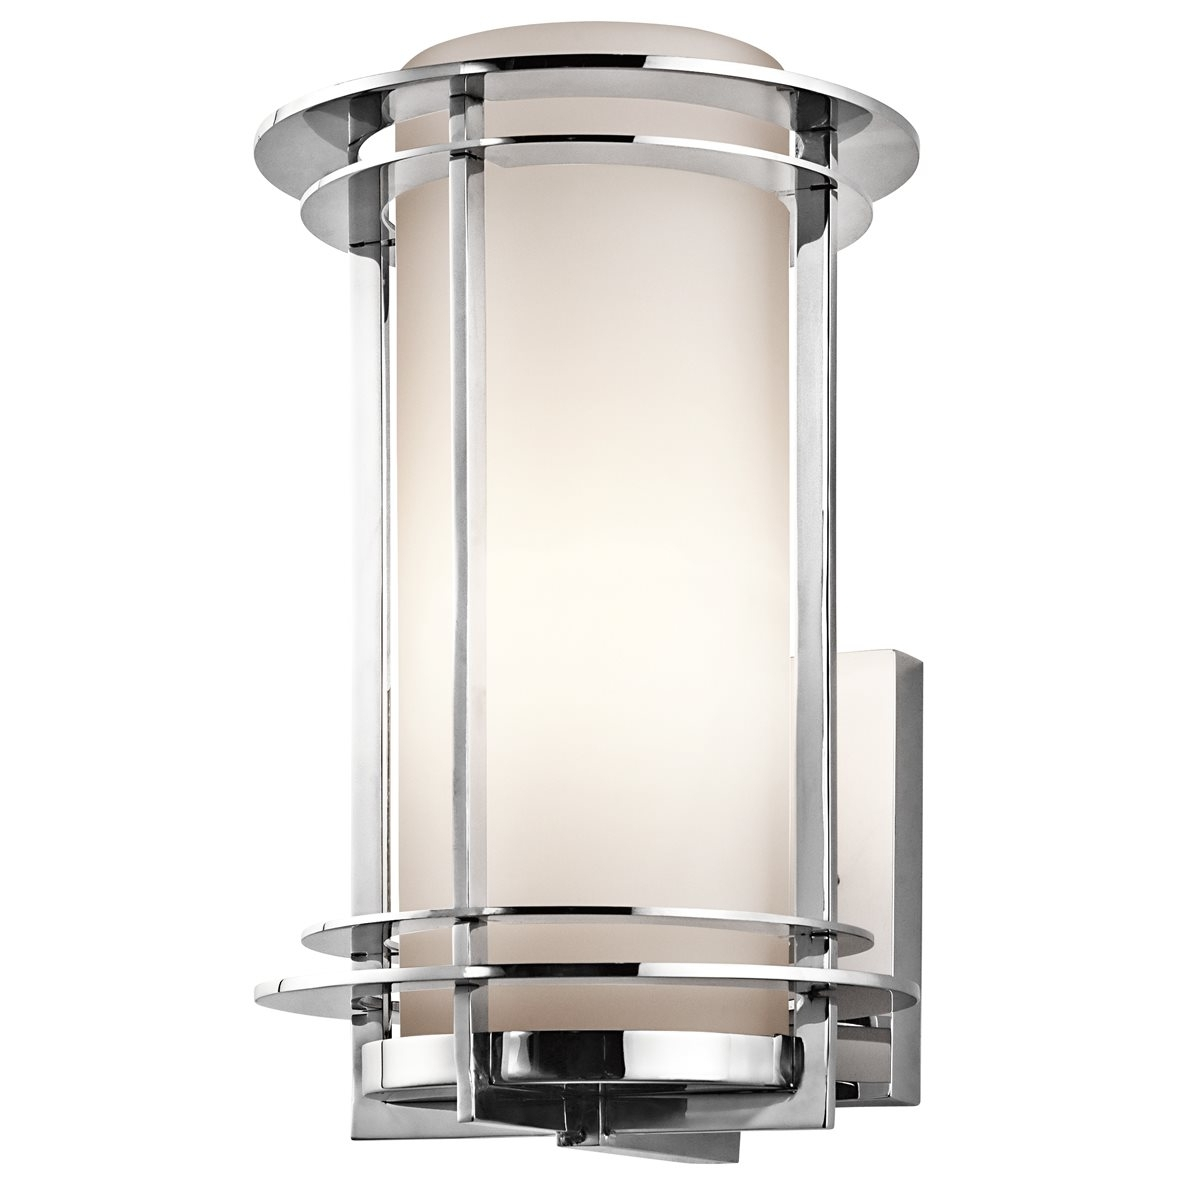 Kichler Lighting 49345Pss316 Pacific Edge Modern / Contemporary Throughout Well Liked Modern And Contemporary Outdoor Lighting Sconces (Gallery 5 of 20)